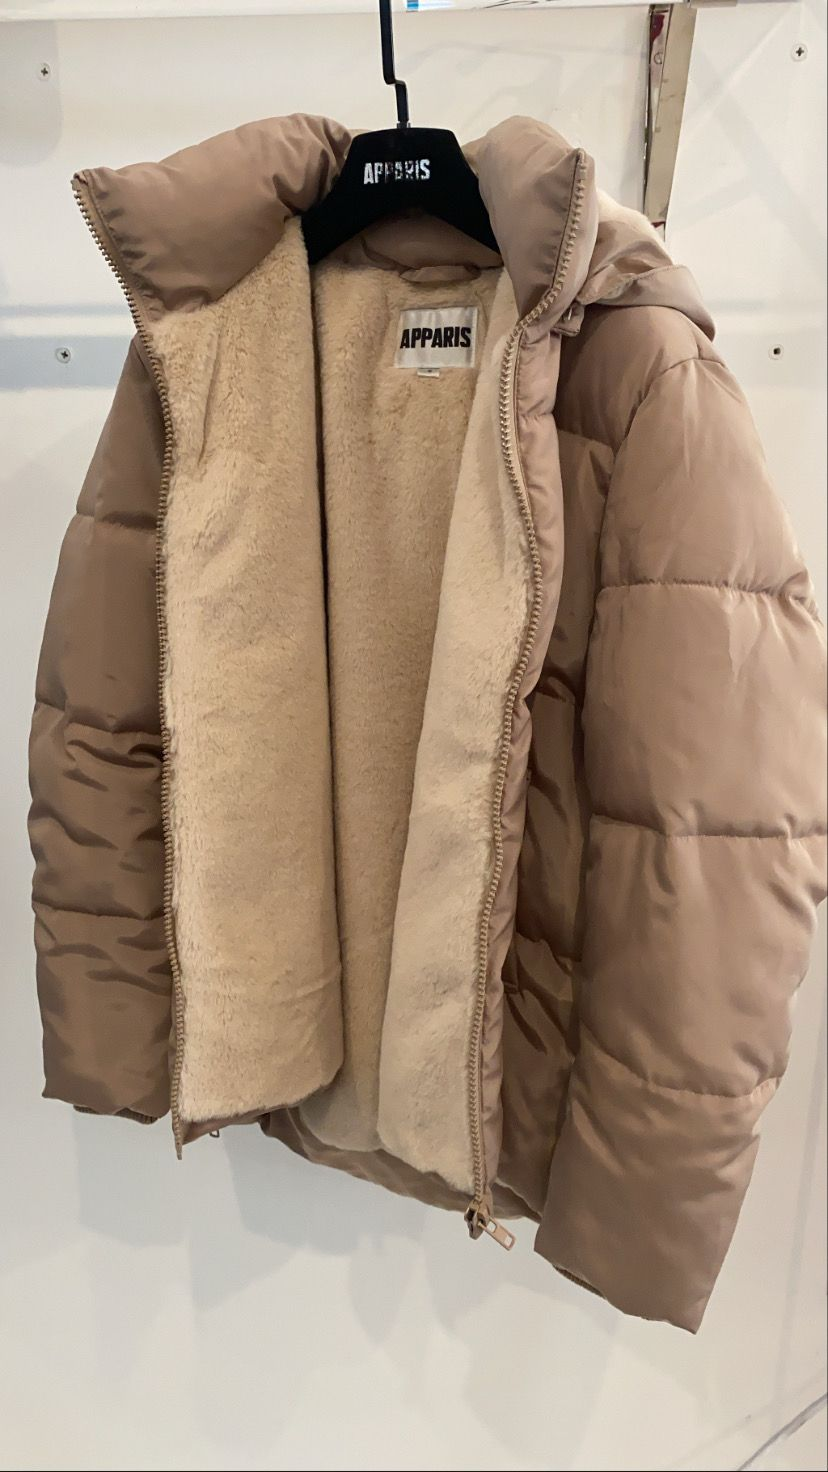 Aman Taupe Puffer Jacket Outfit Girls Fashion Clothes Jacket Outfits [ 1472 x 828 Pixel ]